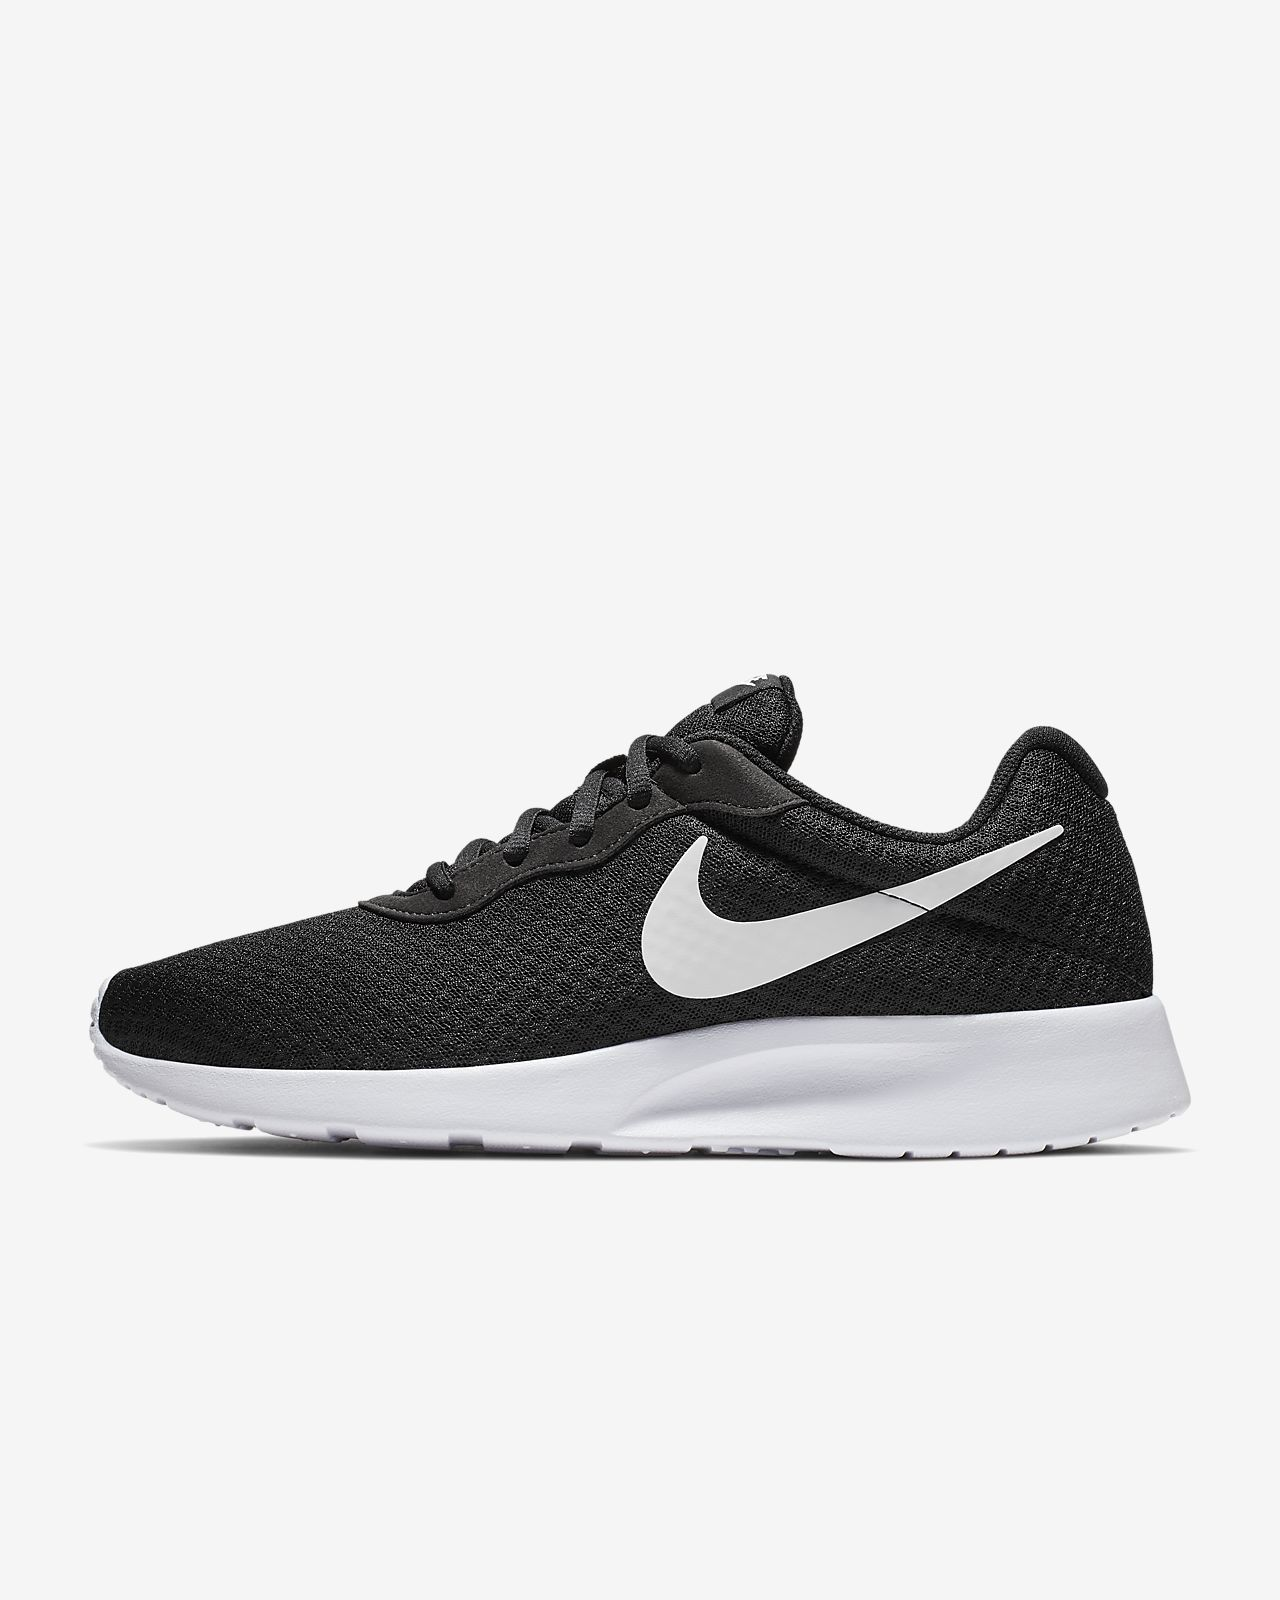 Nike TANJUN Mens NAVY White 812654 011 Lace Up Casual Shoes